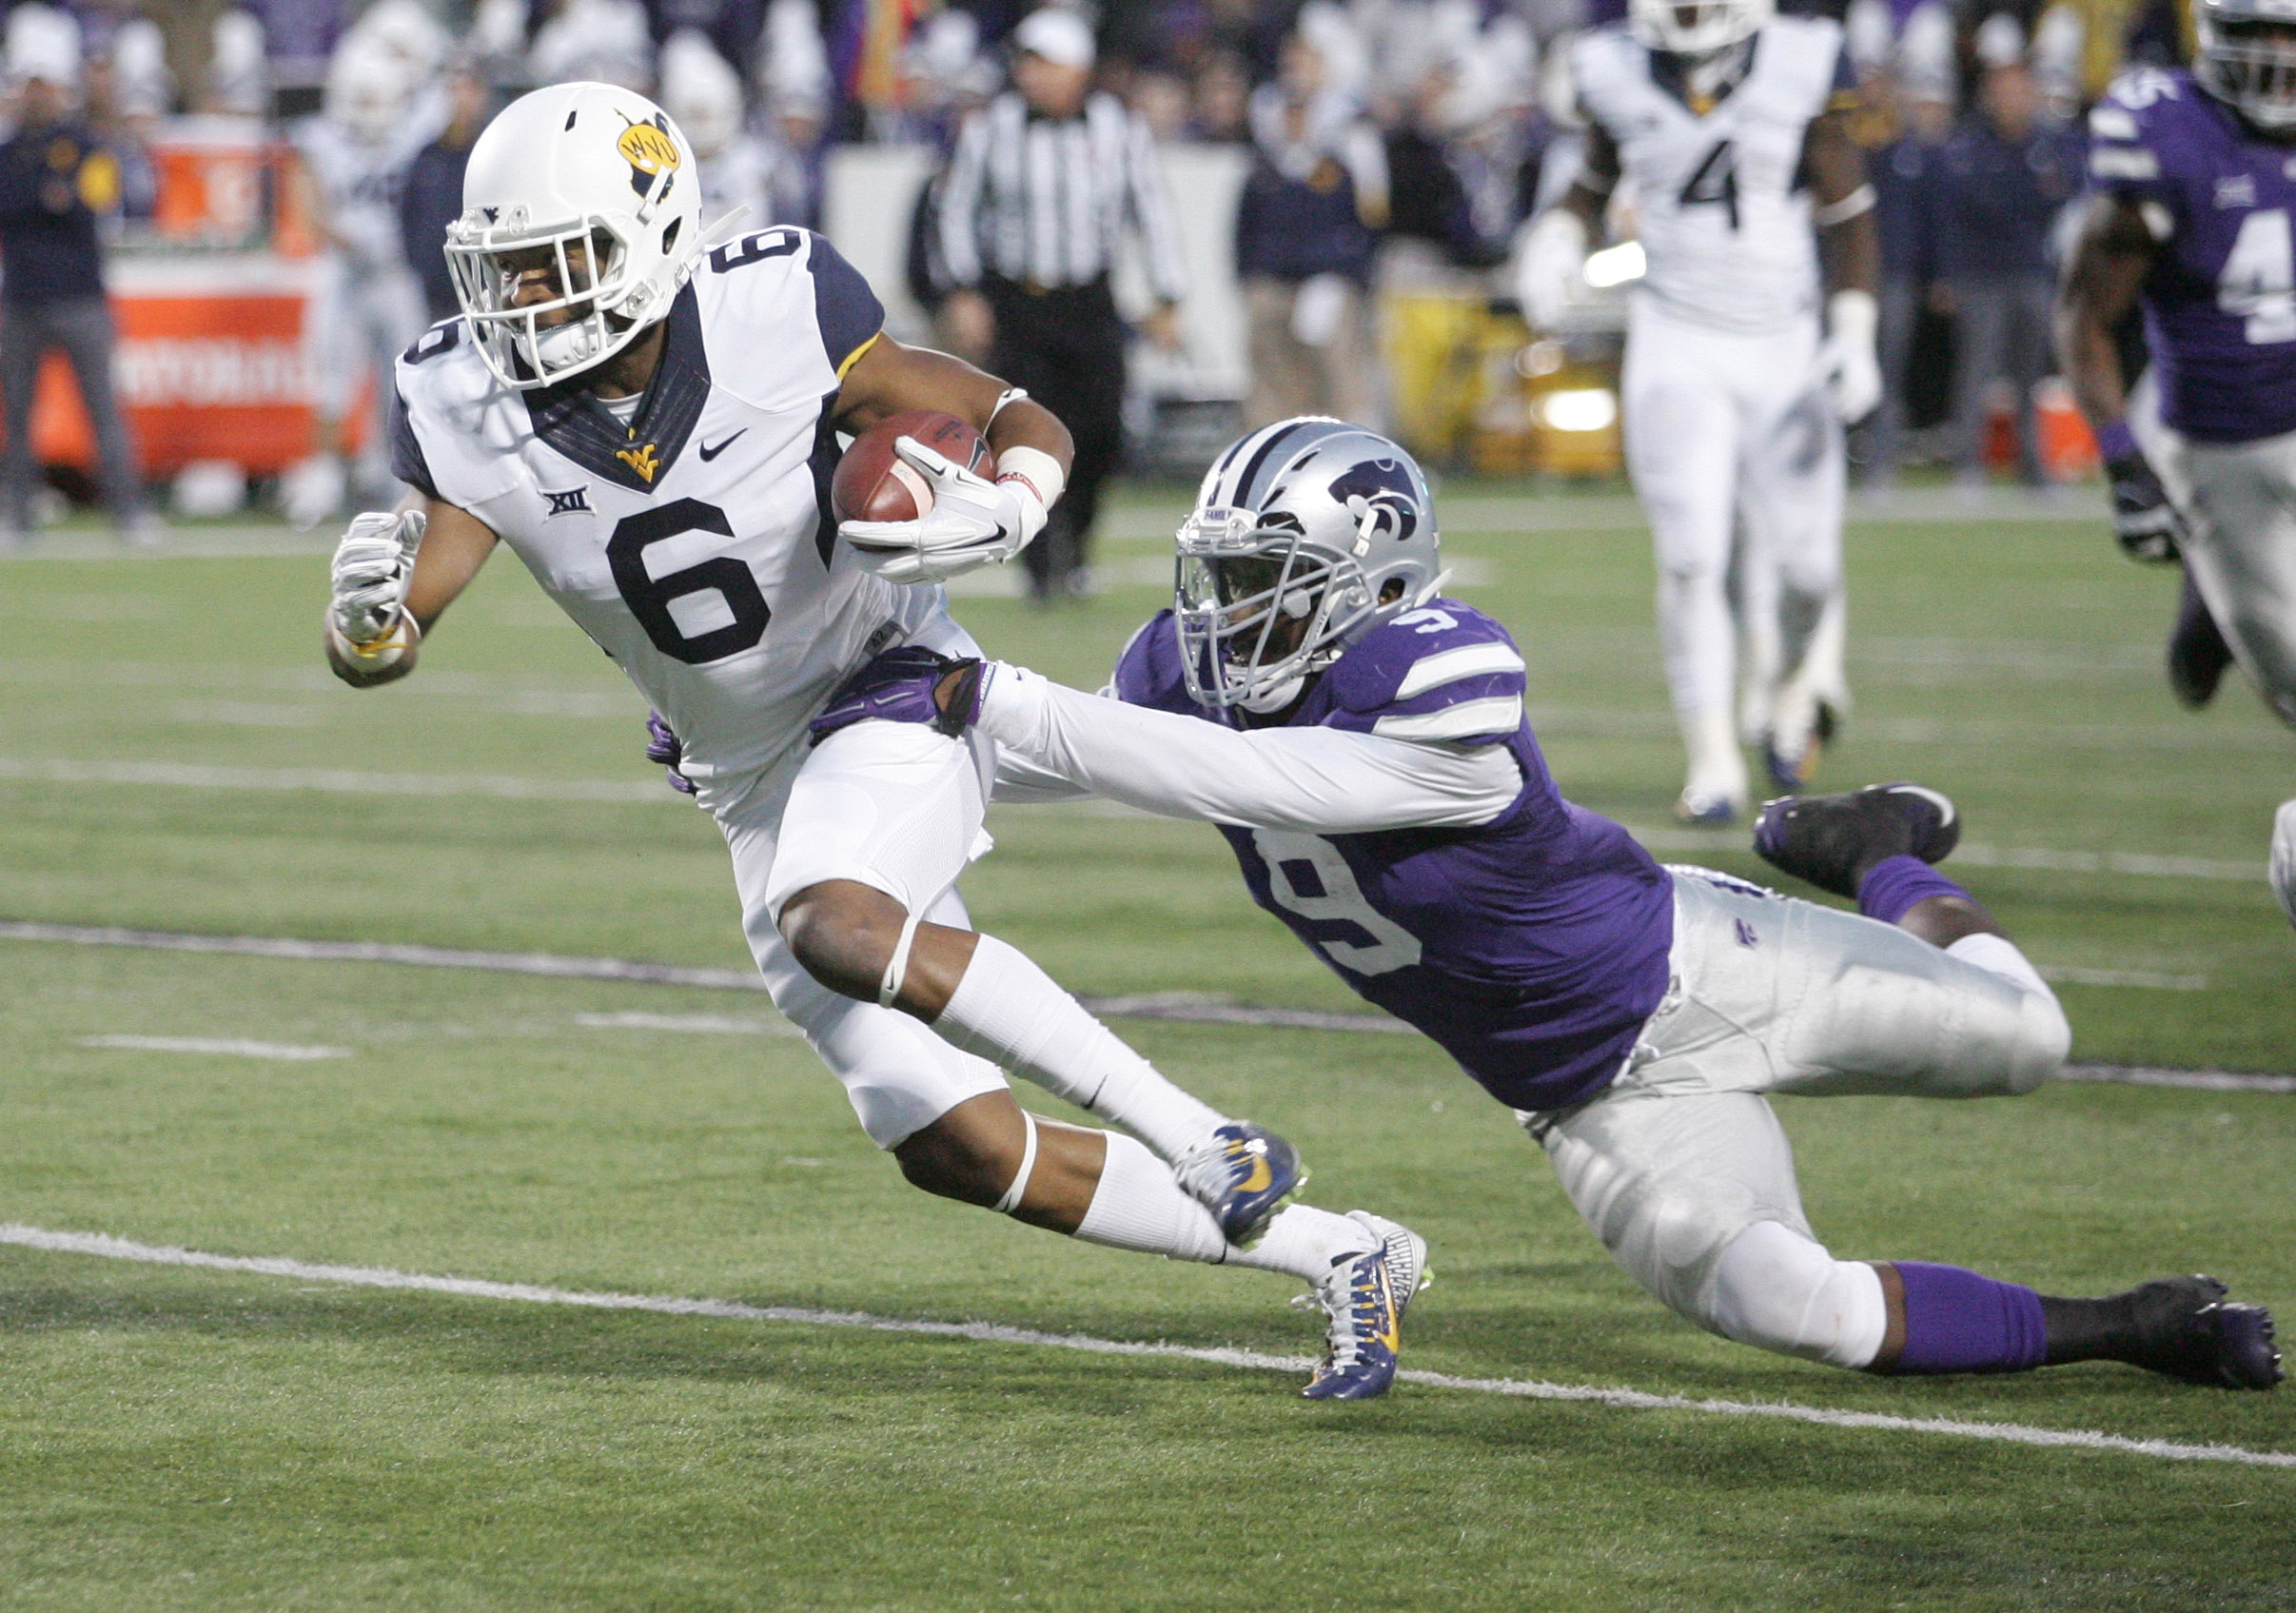 Clad in his Predator facemask, Elijah Lee took a huge step in his sophomore season. If he does the same this year, he will join the pantheon of the greatest K-State linebackers.